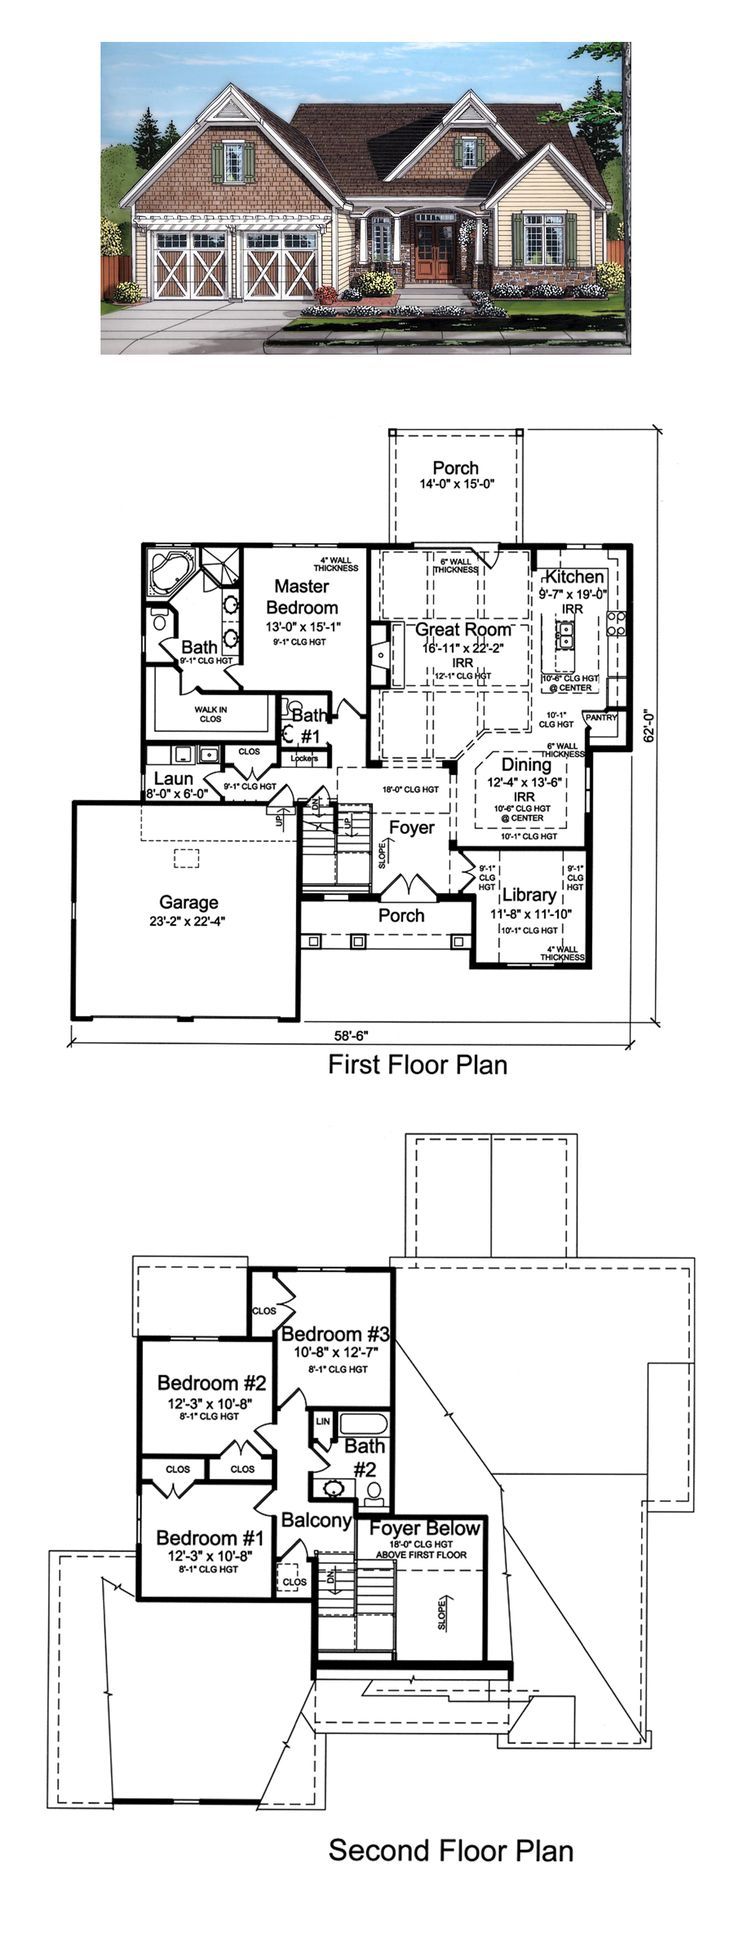 46 best new house plans images on pinterest new house plans new